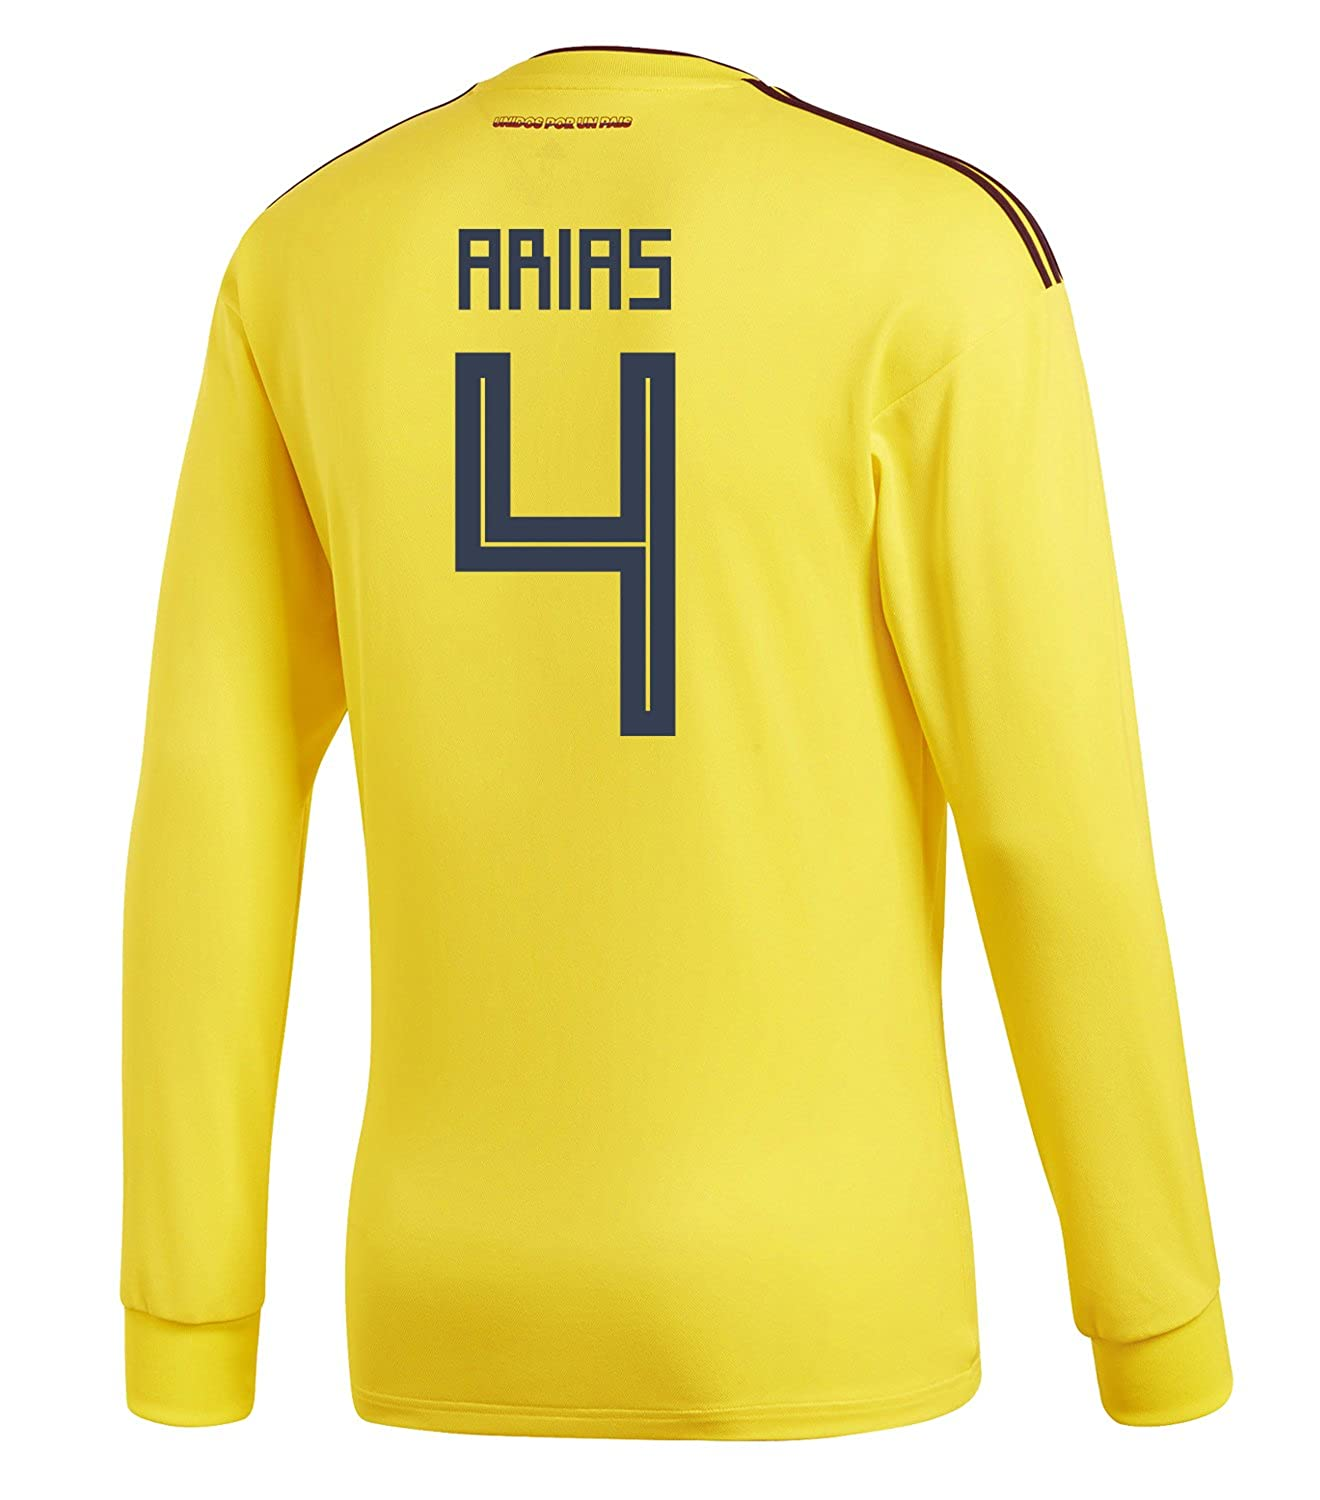 adidas Mens ARIAS #4 Colombia Home Long Sleeve Soccer Jersey World Cup 2018 /サッカー ユニフォーム アリアス 背番号 4 コロンビア ホーム用 長袖 B07B8FH6ZQUS Small